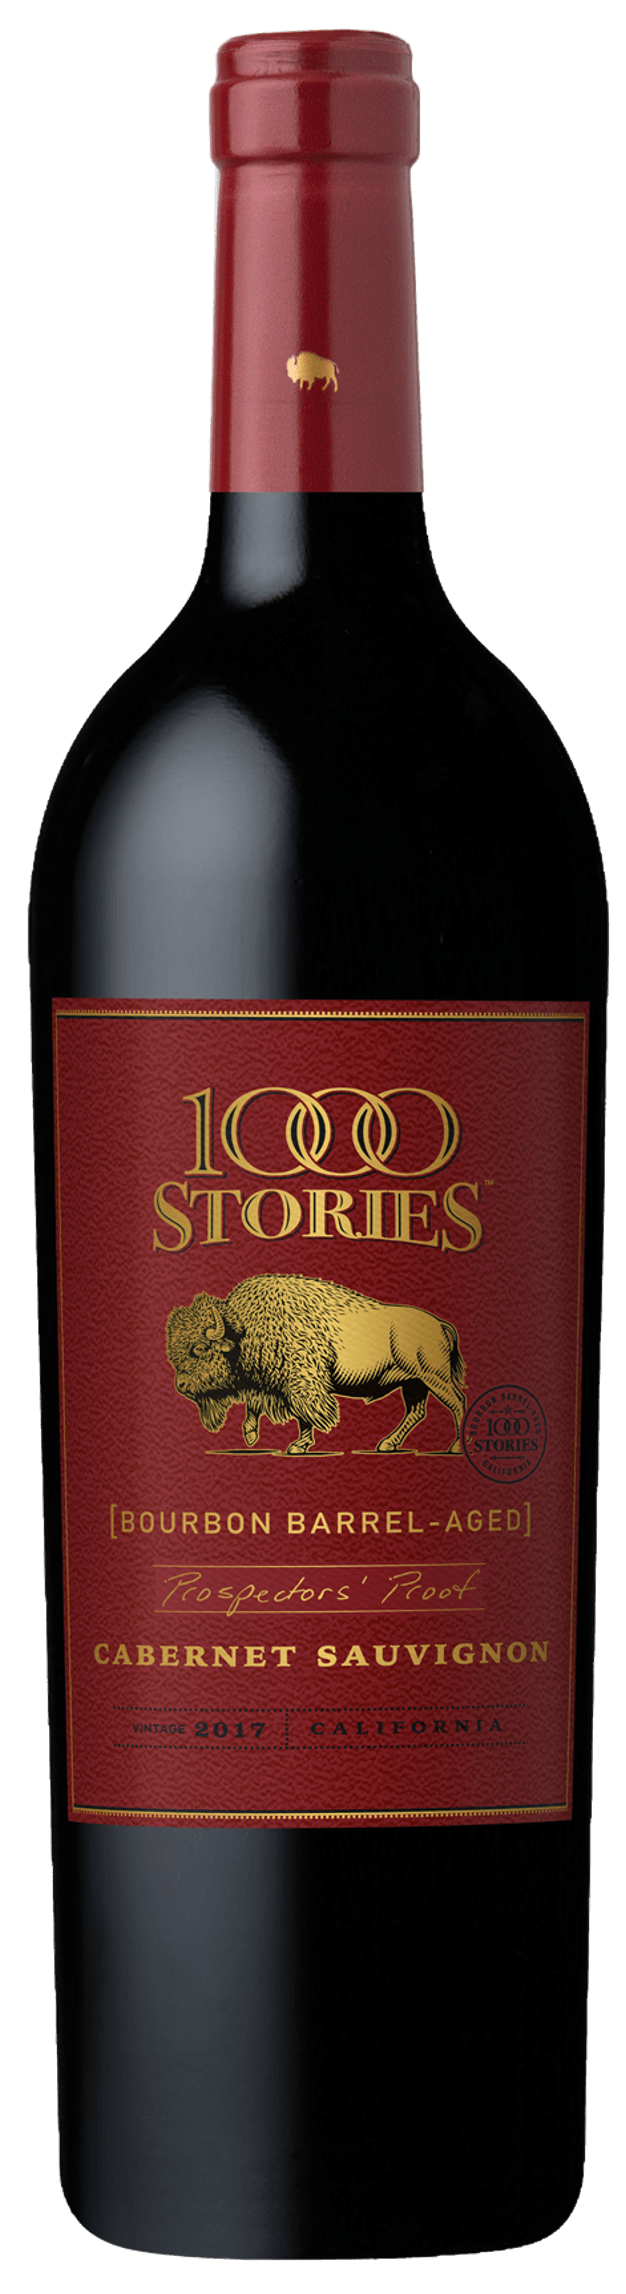 2017 1000 Stories Cabernet Sauvignon 750Ml